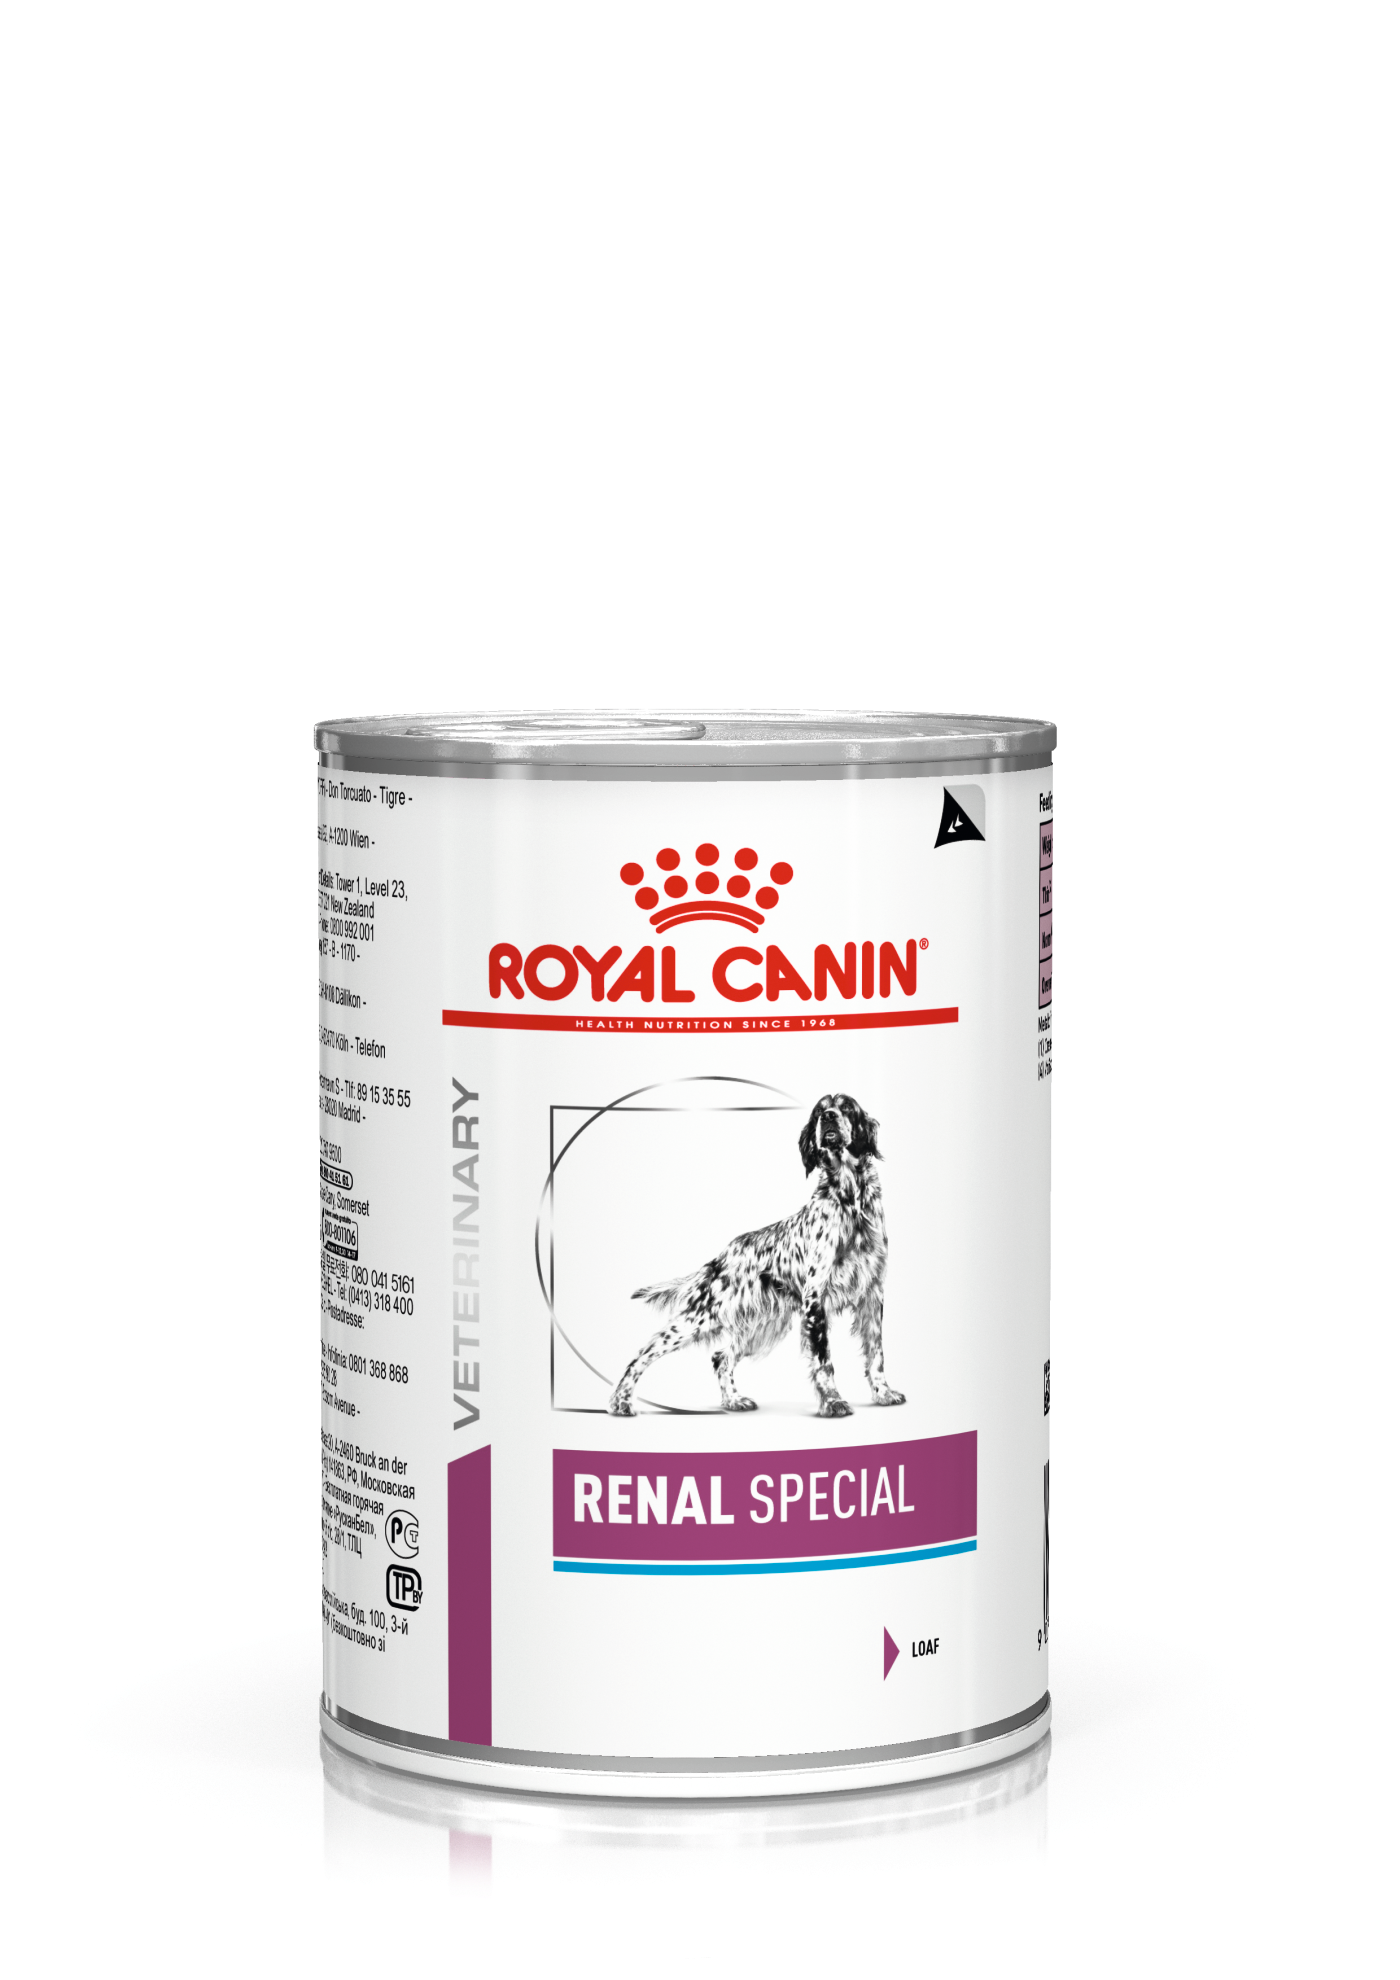 Renal   Special product image